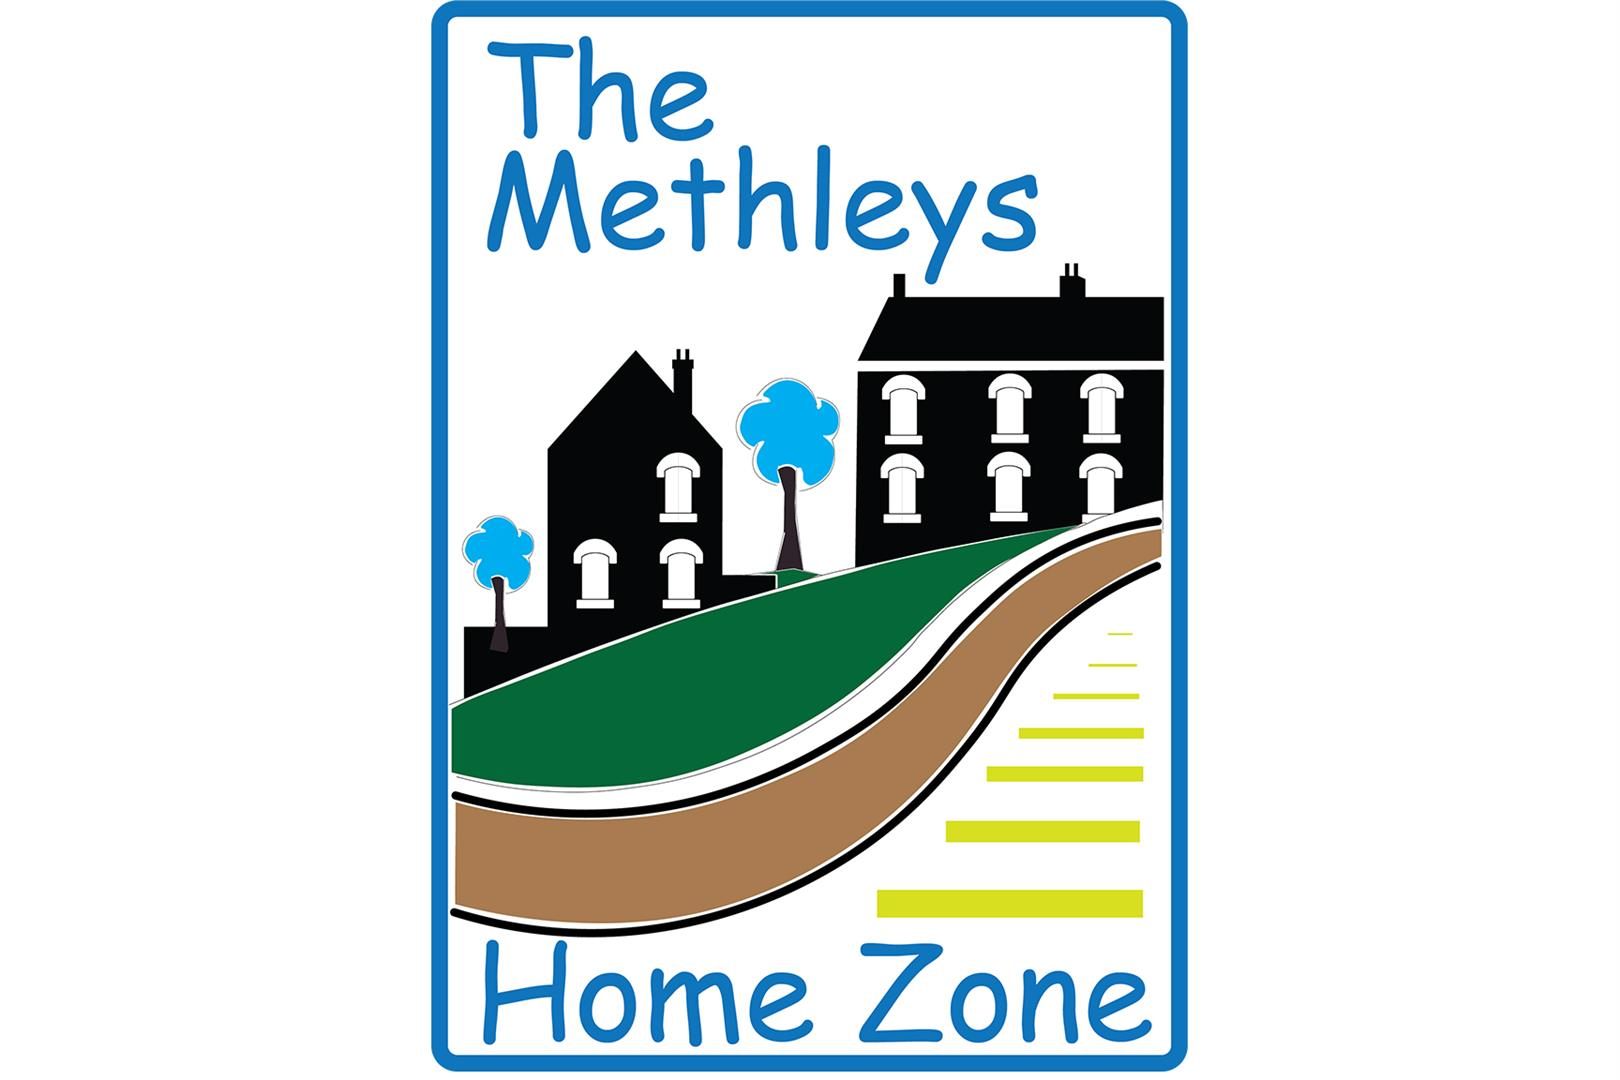 METHLEYS HOME ZONE